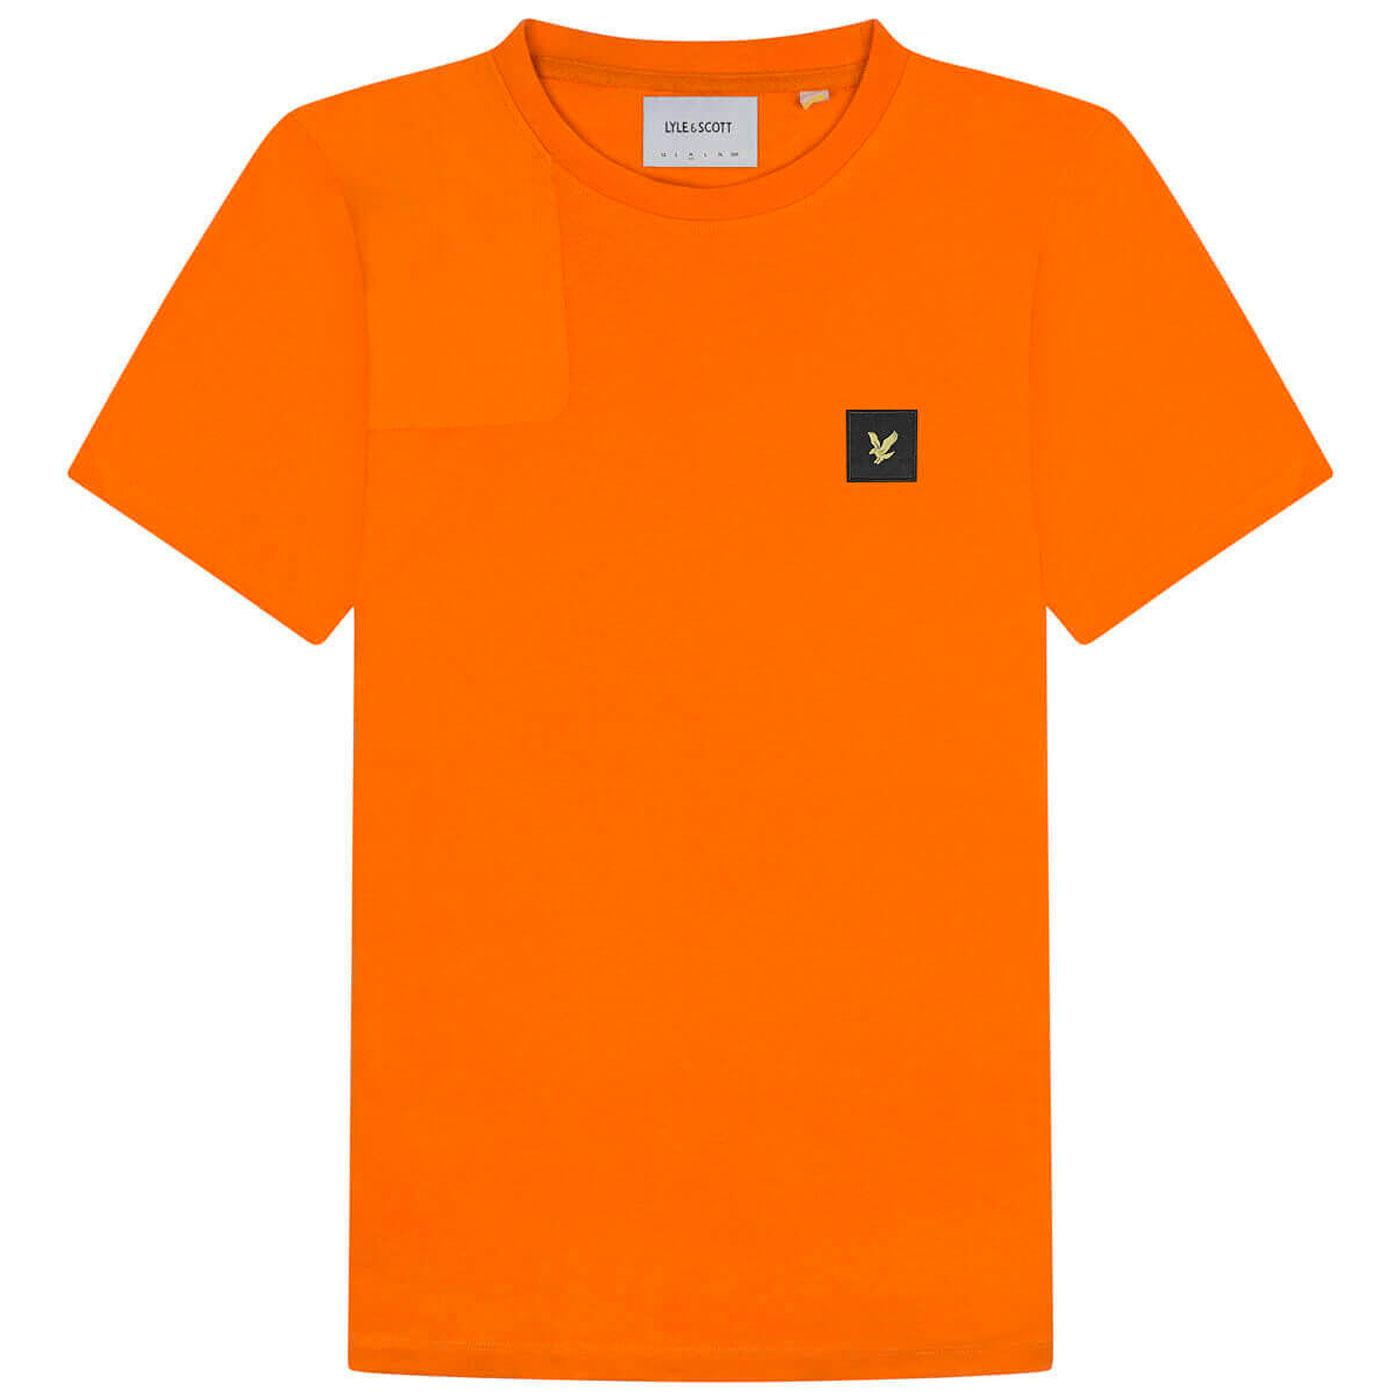 LYLE & SCOTT Mod Casuals 80s Applique Ripstop Tee